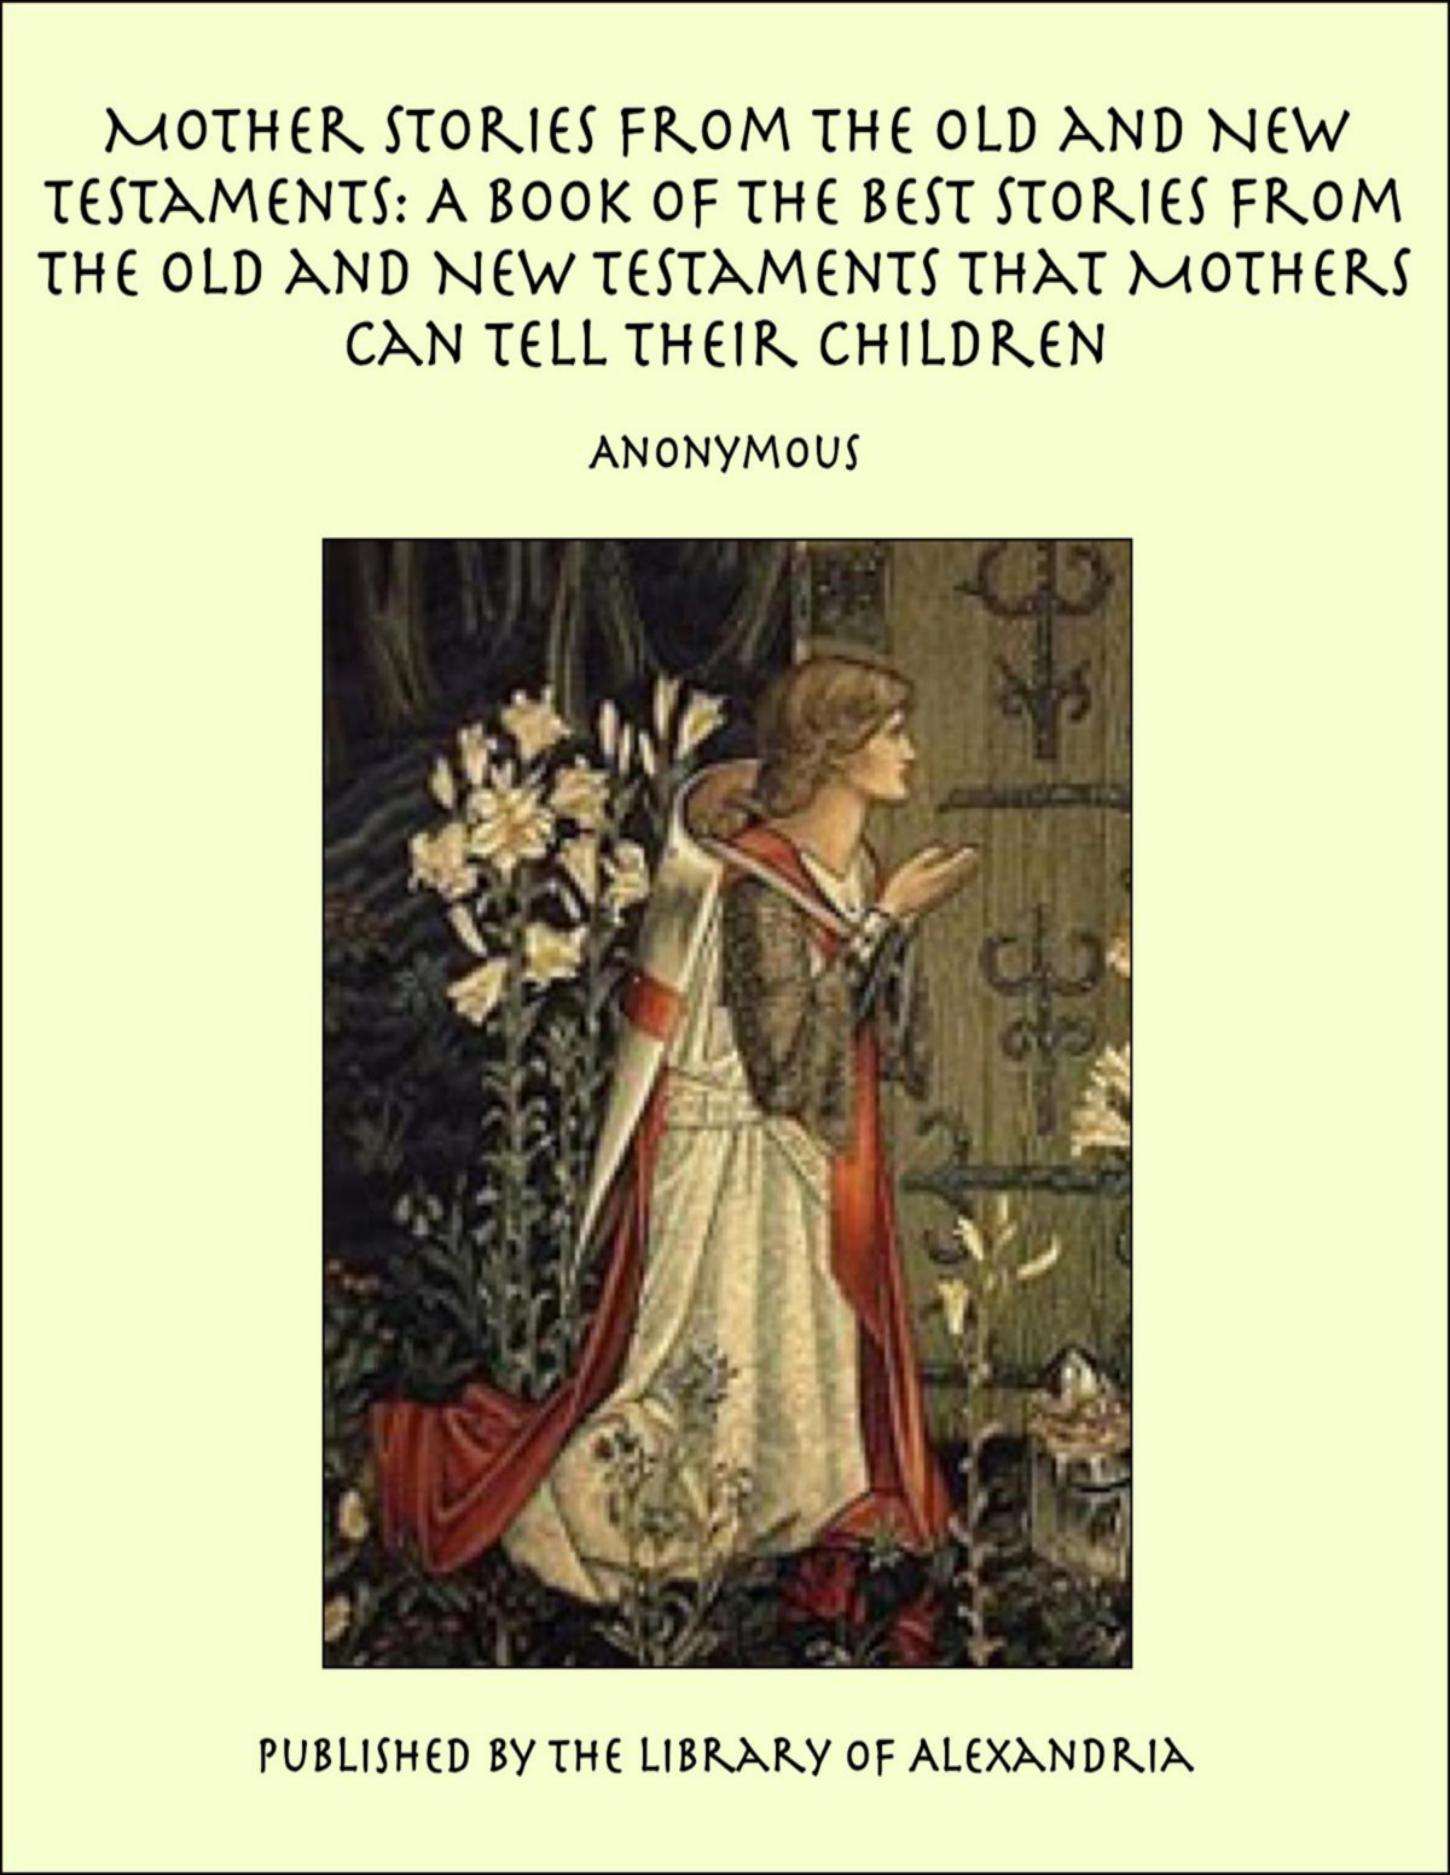 Anonymous - Mother Stories from the Old and New Testaments: A Book of the Best Stories from the Old and New Testaments that Mothers Can Tell Their Children